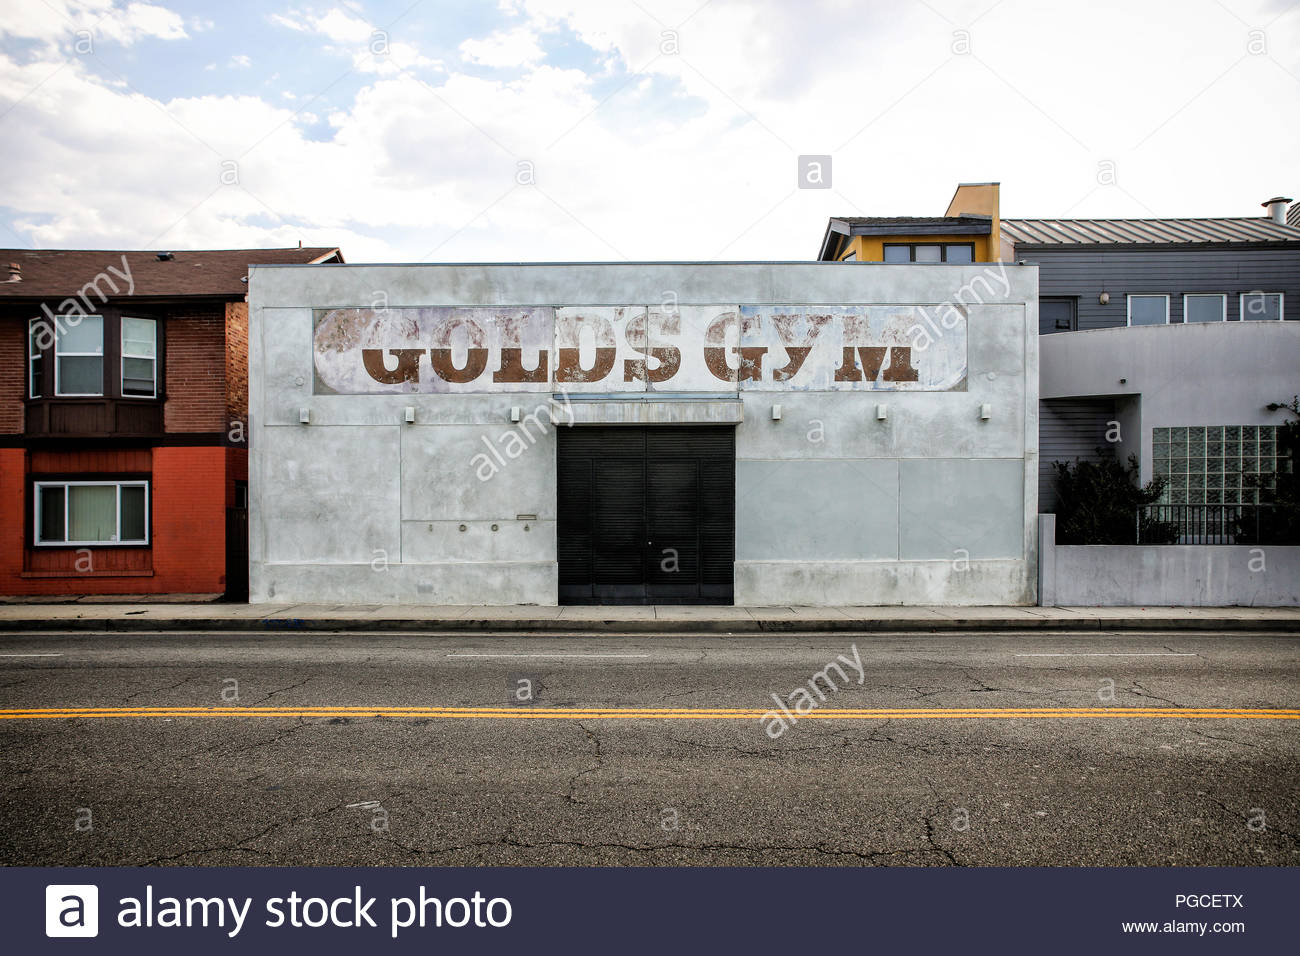 Golds Gym Stock Photos Golds Gym Stock Images   Alamy 1300x956